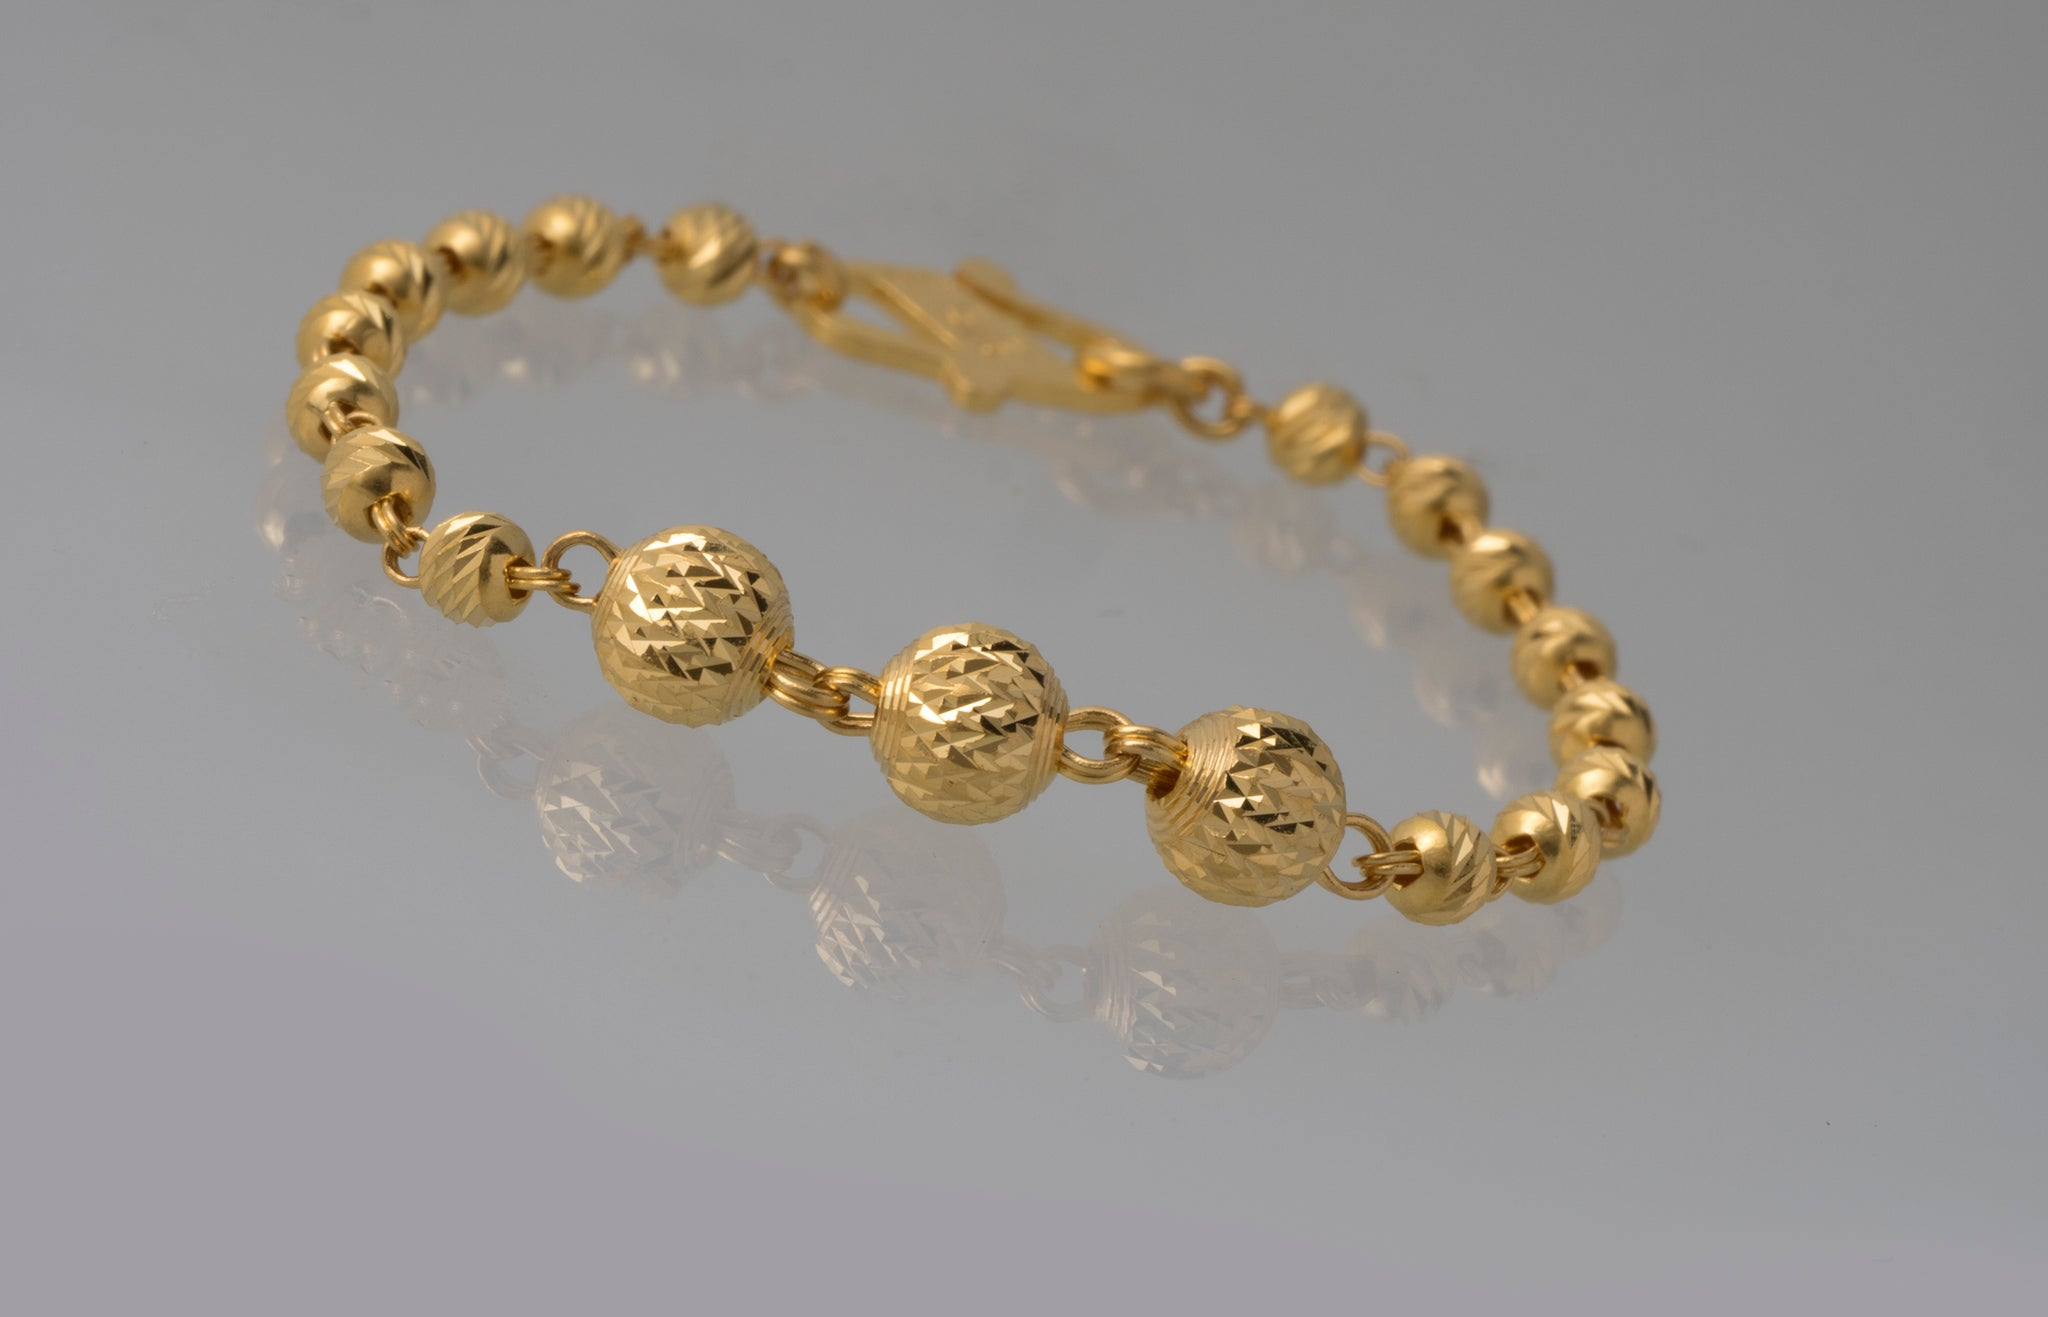 22ct Gold Children's Bracelets with Diamond Cut Design CBR-7412